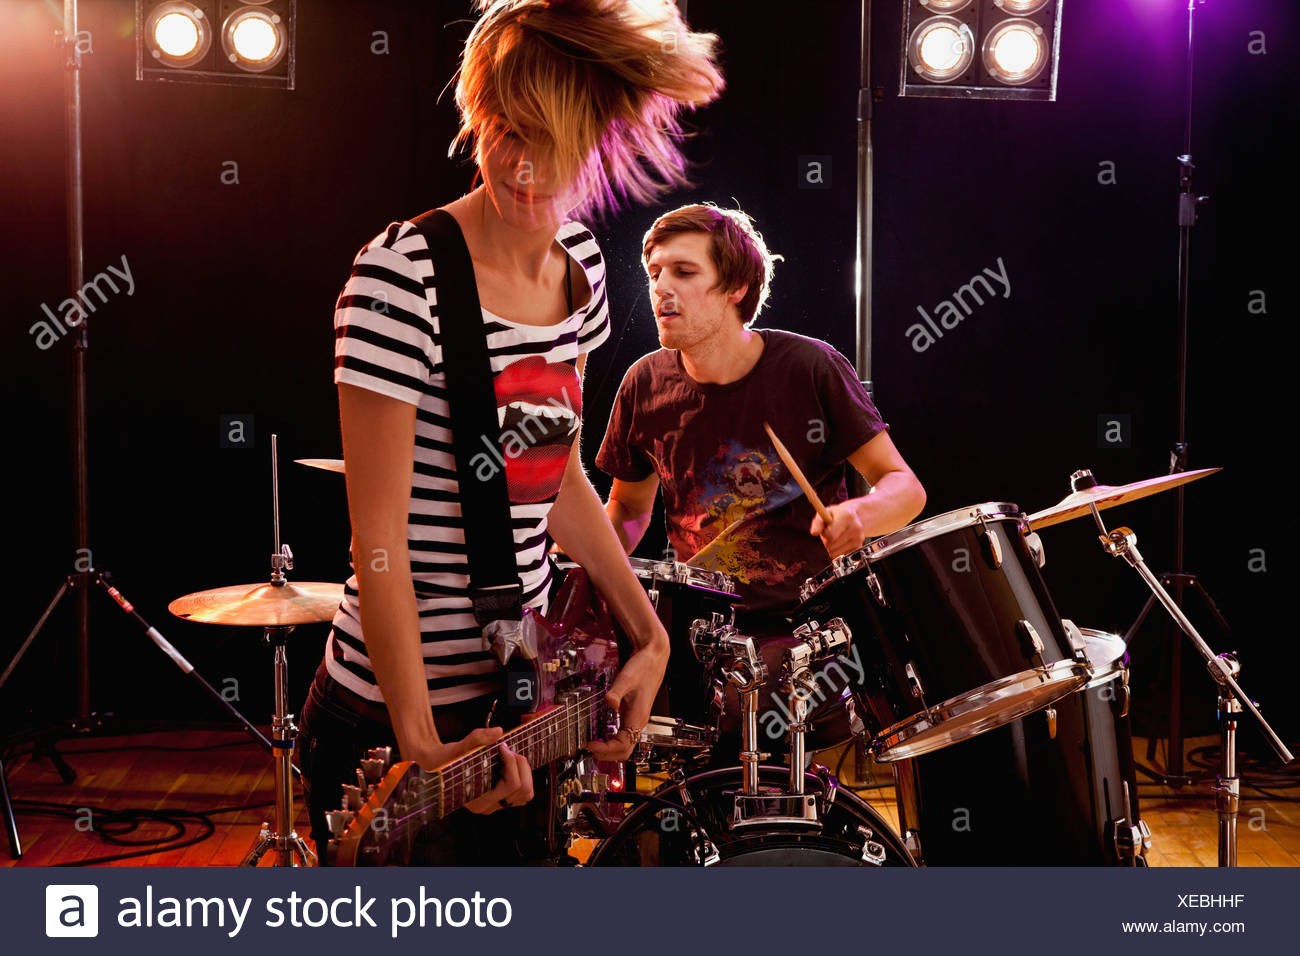 A man playing drums and a woman playing guitar in a rock band performing on stage - Stock Image